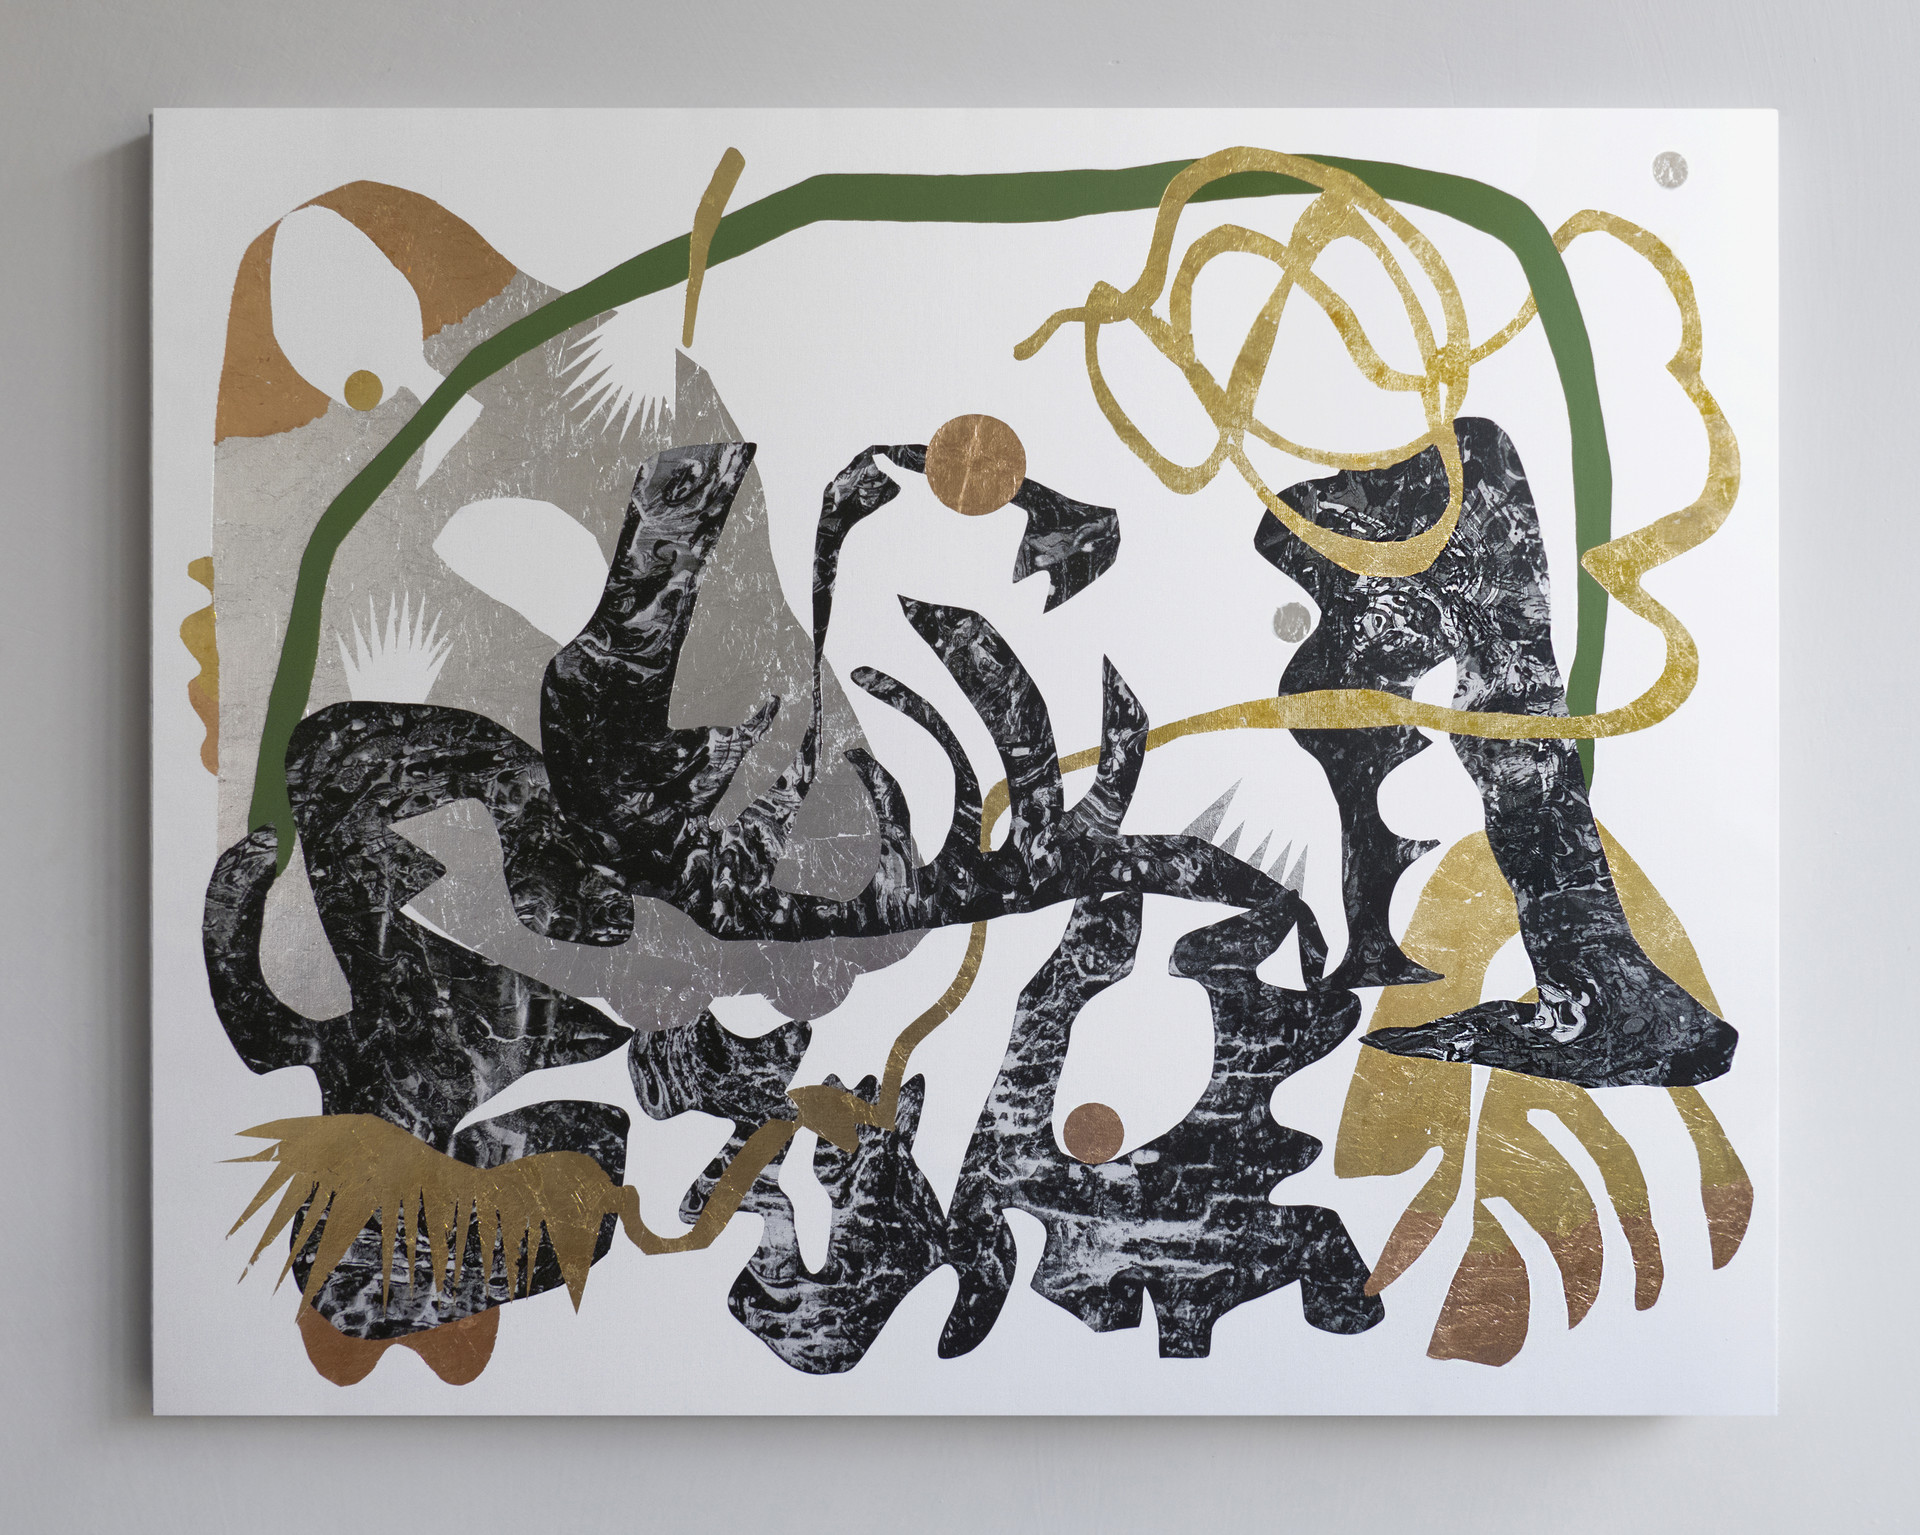 A picnic where everyone keeps secrets to themselves 2018 Gold foil, silver foil, copper foil and acrylic on marbled printed canvas 200x160cm